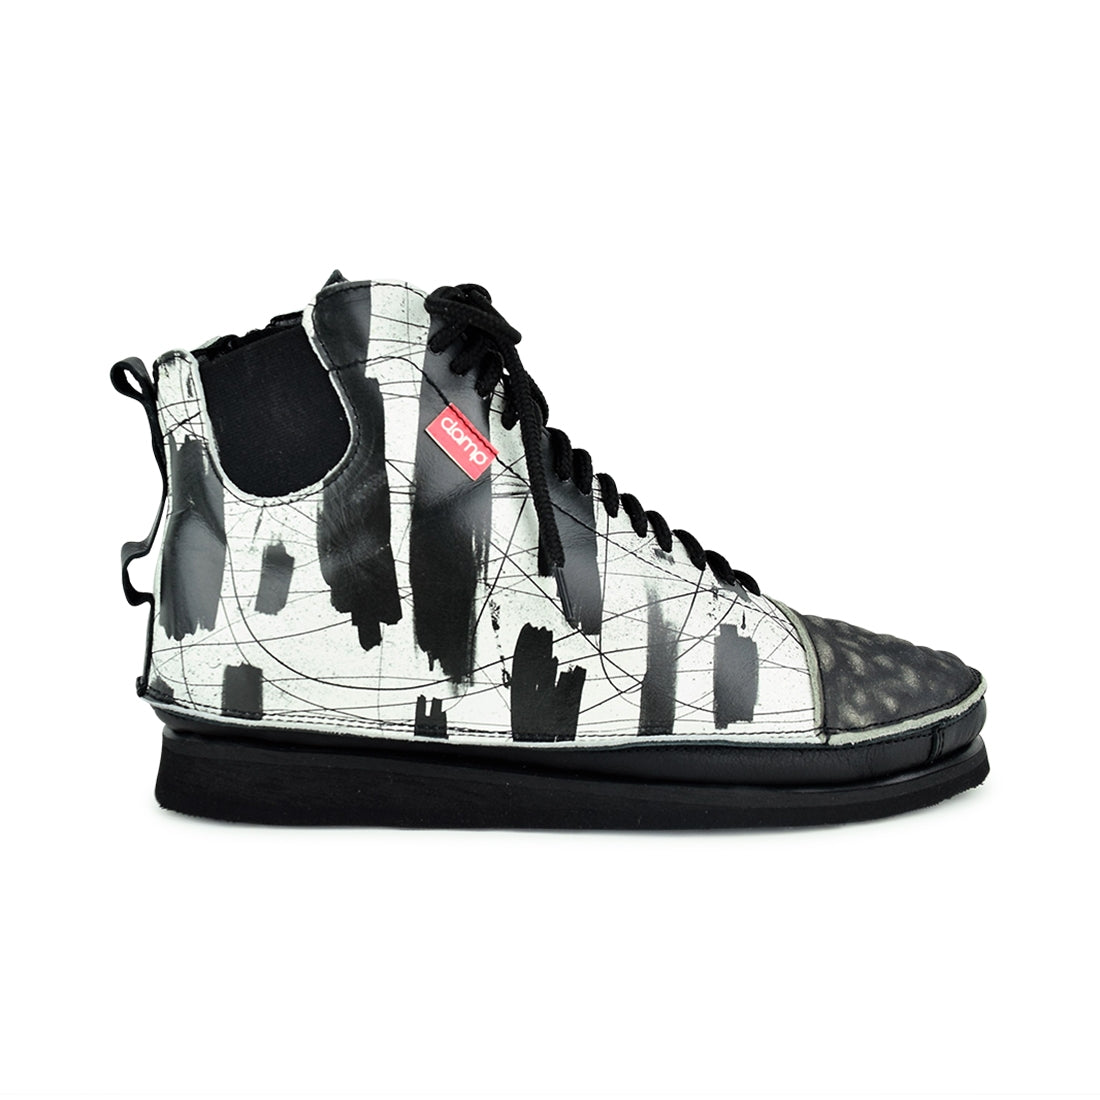 BONNAIR3 - Clamp Lace Up Ankle Boot Black/White Print